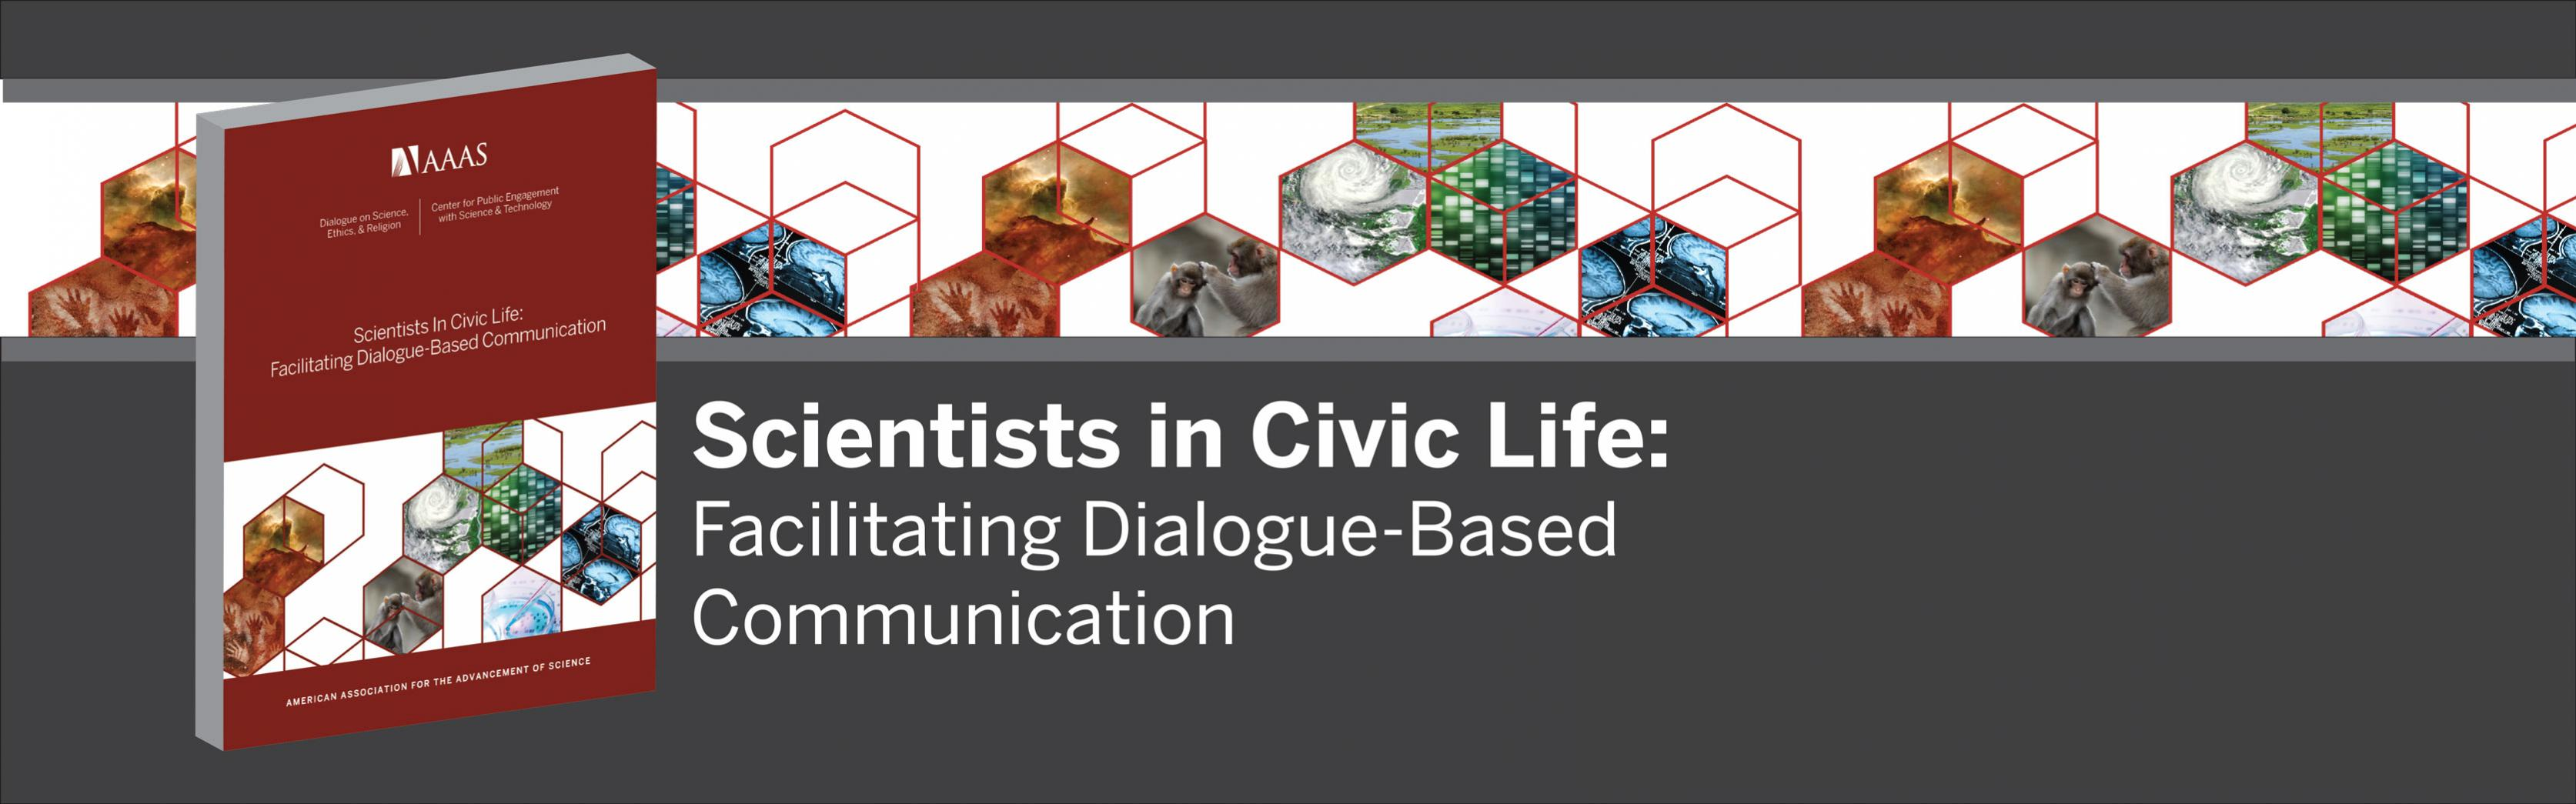 Scientists in Civic Life